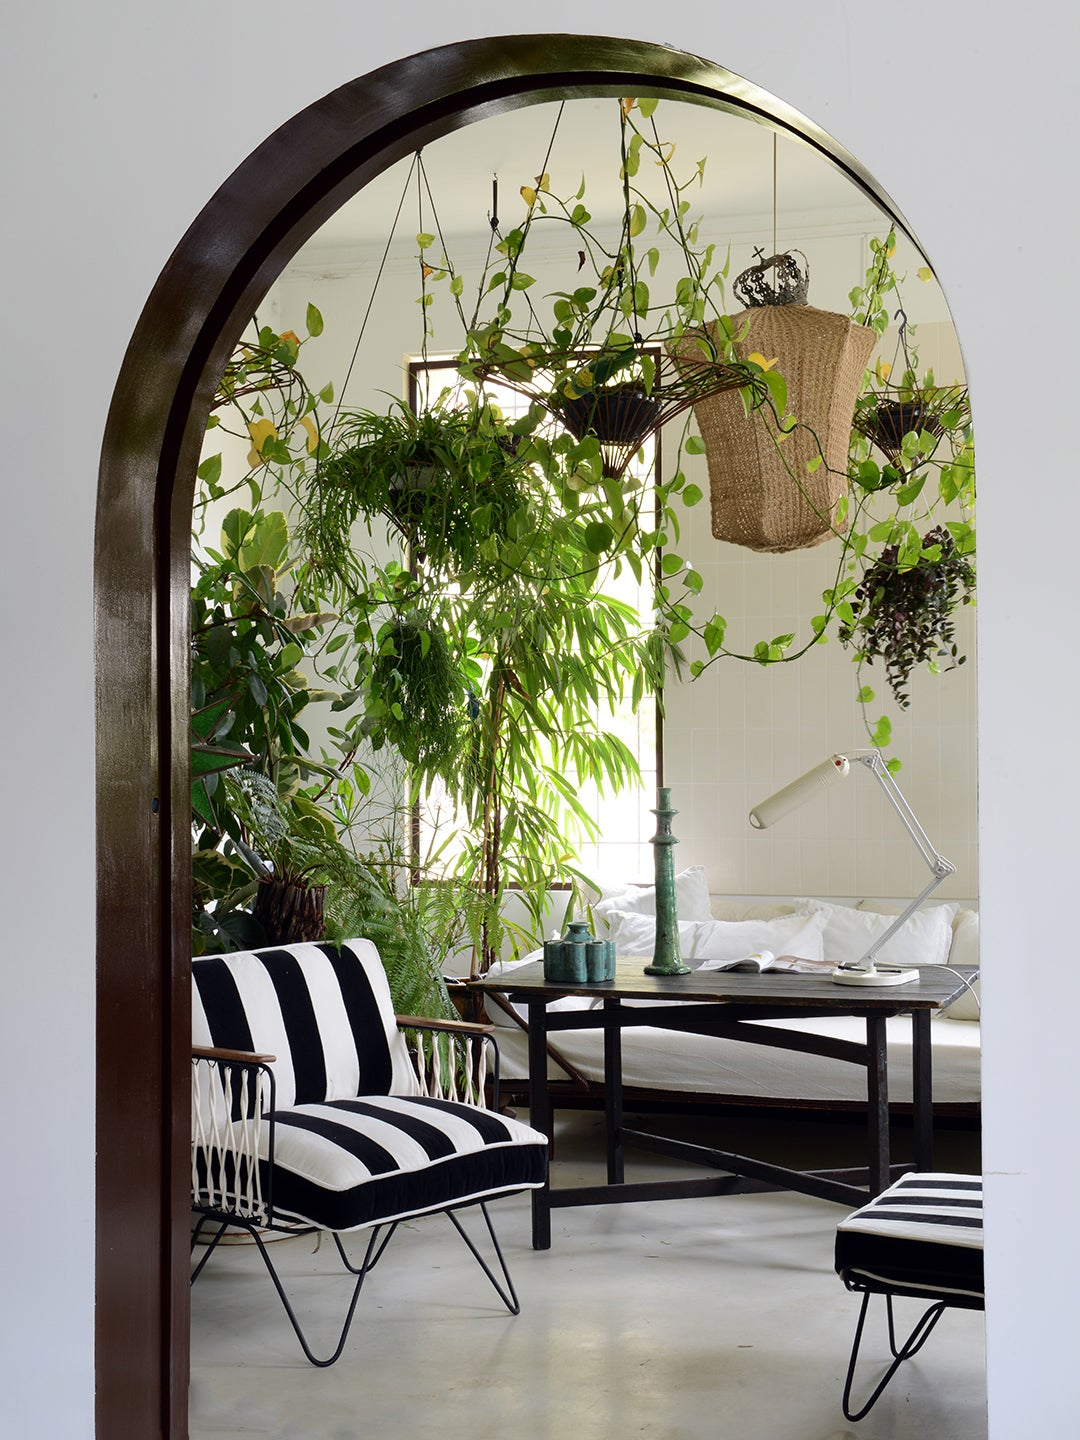 room with hanging planters and striped chair